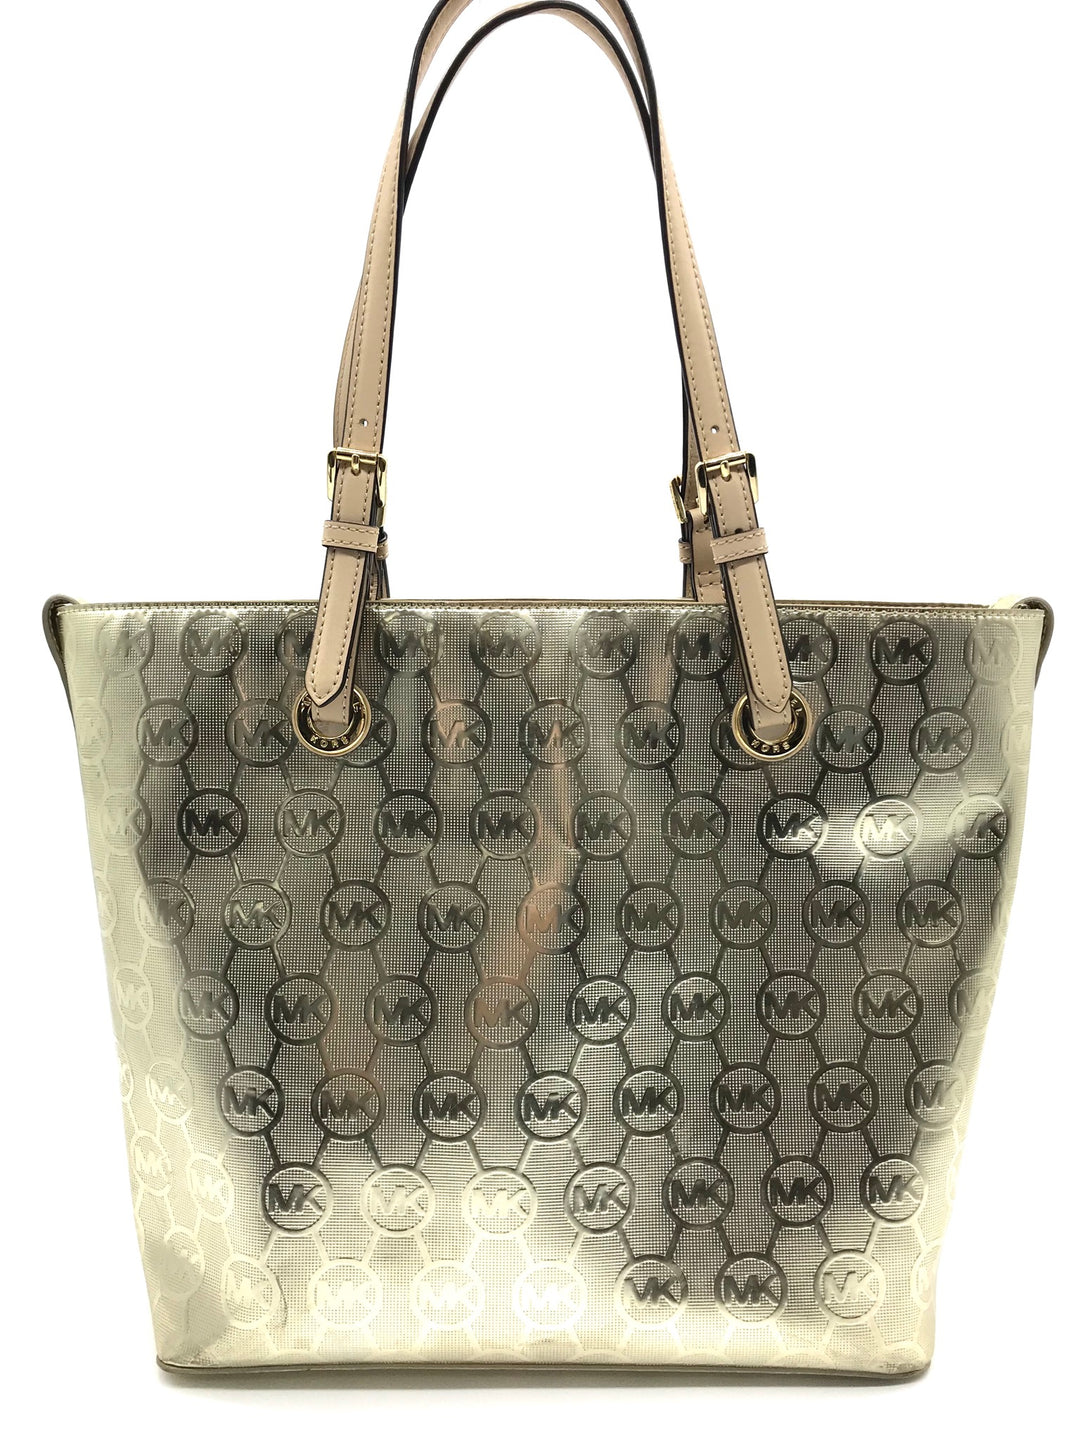 Primary Photo - BRAND: MICHAEL KORS <BR>STYLE: HANDBAG DESIGNER <BR>COLOR: GOLD <BR>SIZE: MEDIUM <BR>SKU: 262-26275-64439<BR>GENTLE WEAR - AS IS<BR>DESIGNER BRAND - FINAL SALE